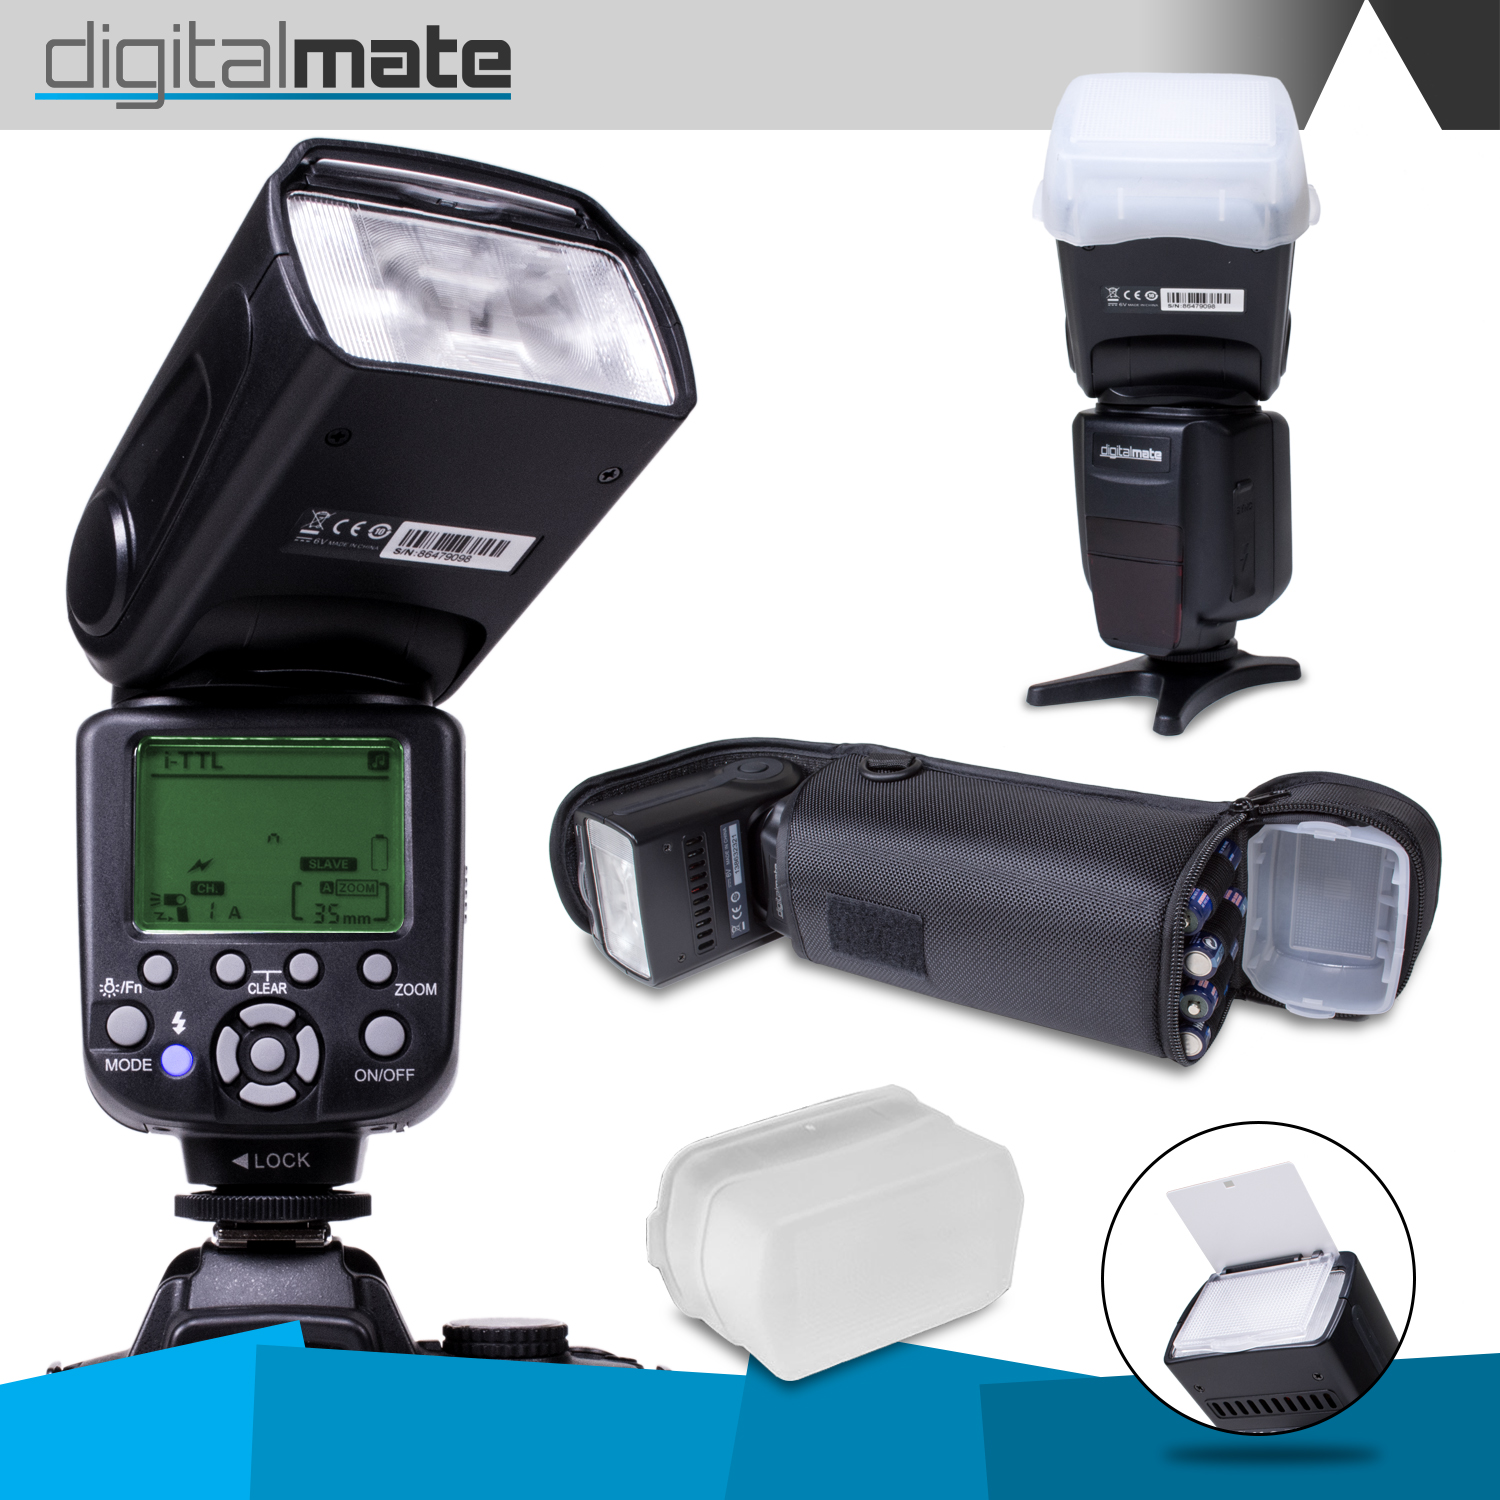 DigitalMate SB680 E-TTL Flash Kit for NIKON DSLR D7200 D7000 D5500 D5300 D5200 D5100 D5000 D3300 D3200 D3100